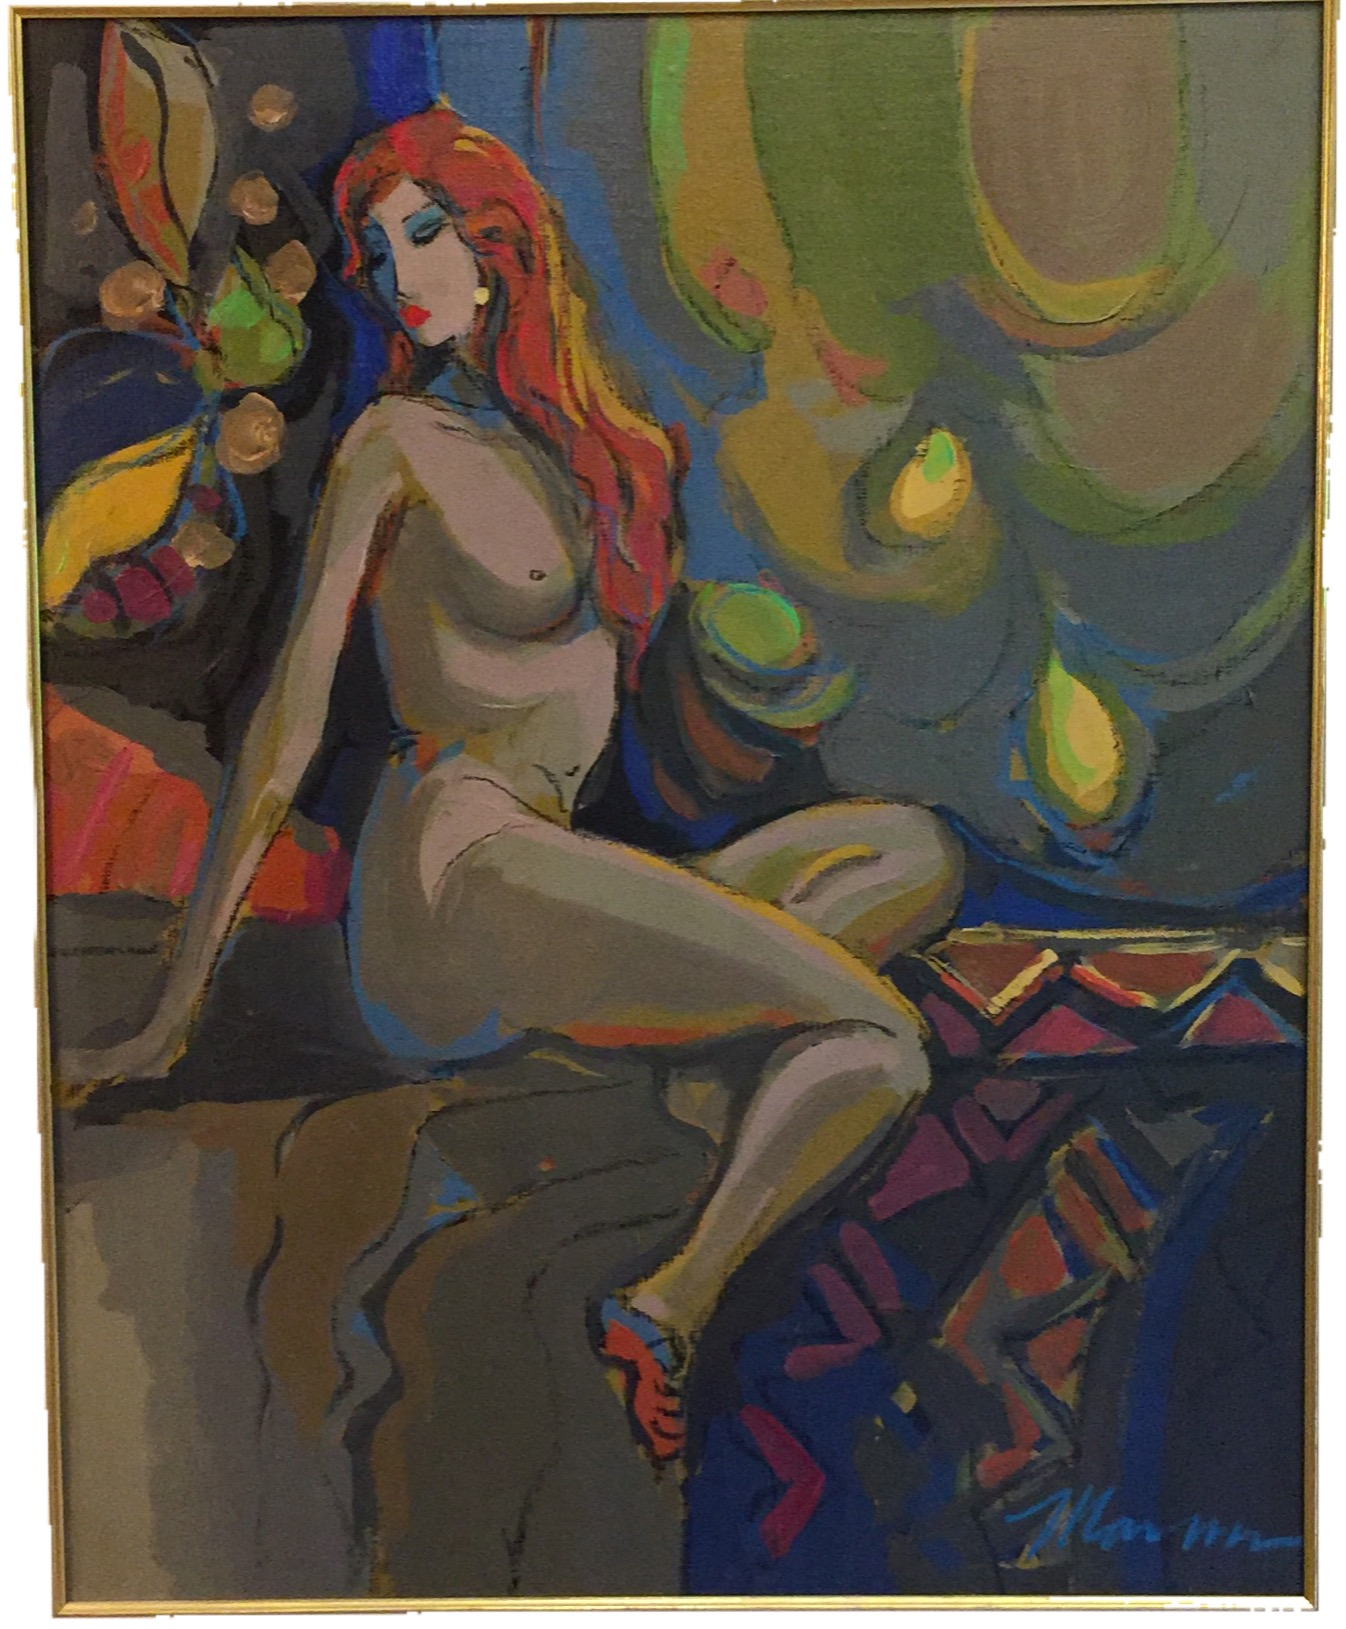 La Figure Nue 1 artwork by Isaac Maimon - art listed for sale on Artplode